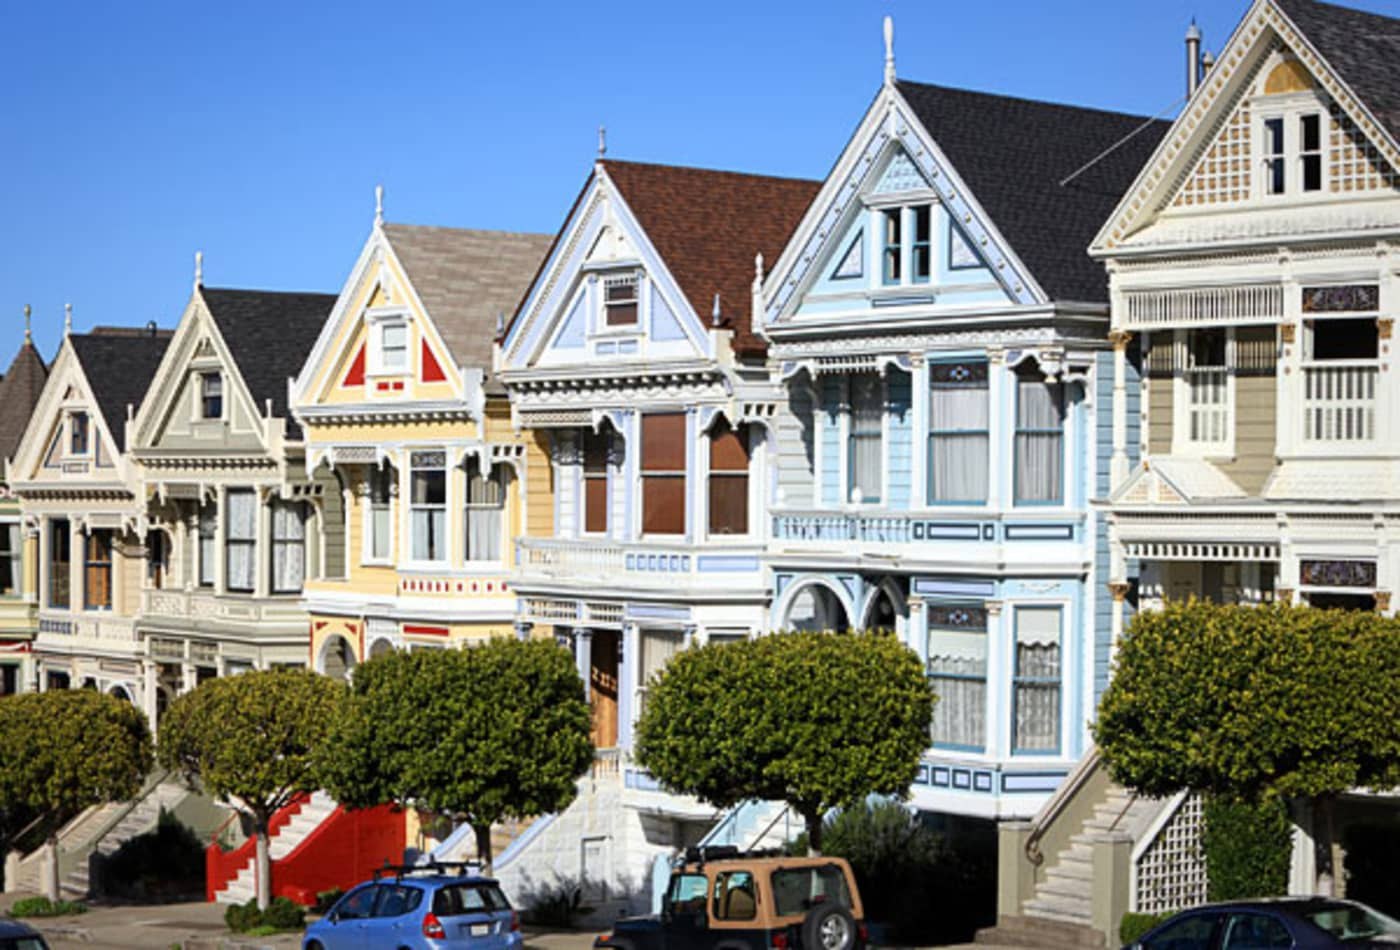 San-Francisco-California-Priciest-Cities-to-Rent-CNBC.jpg